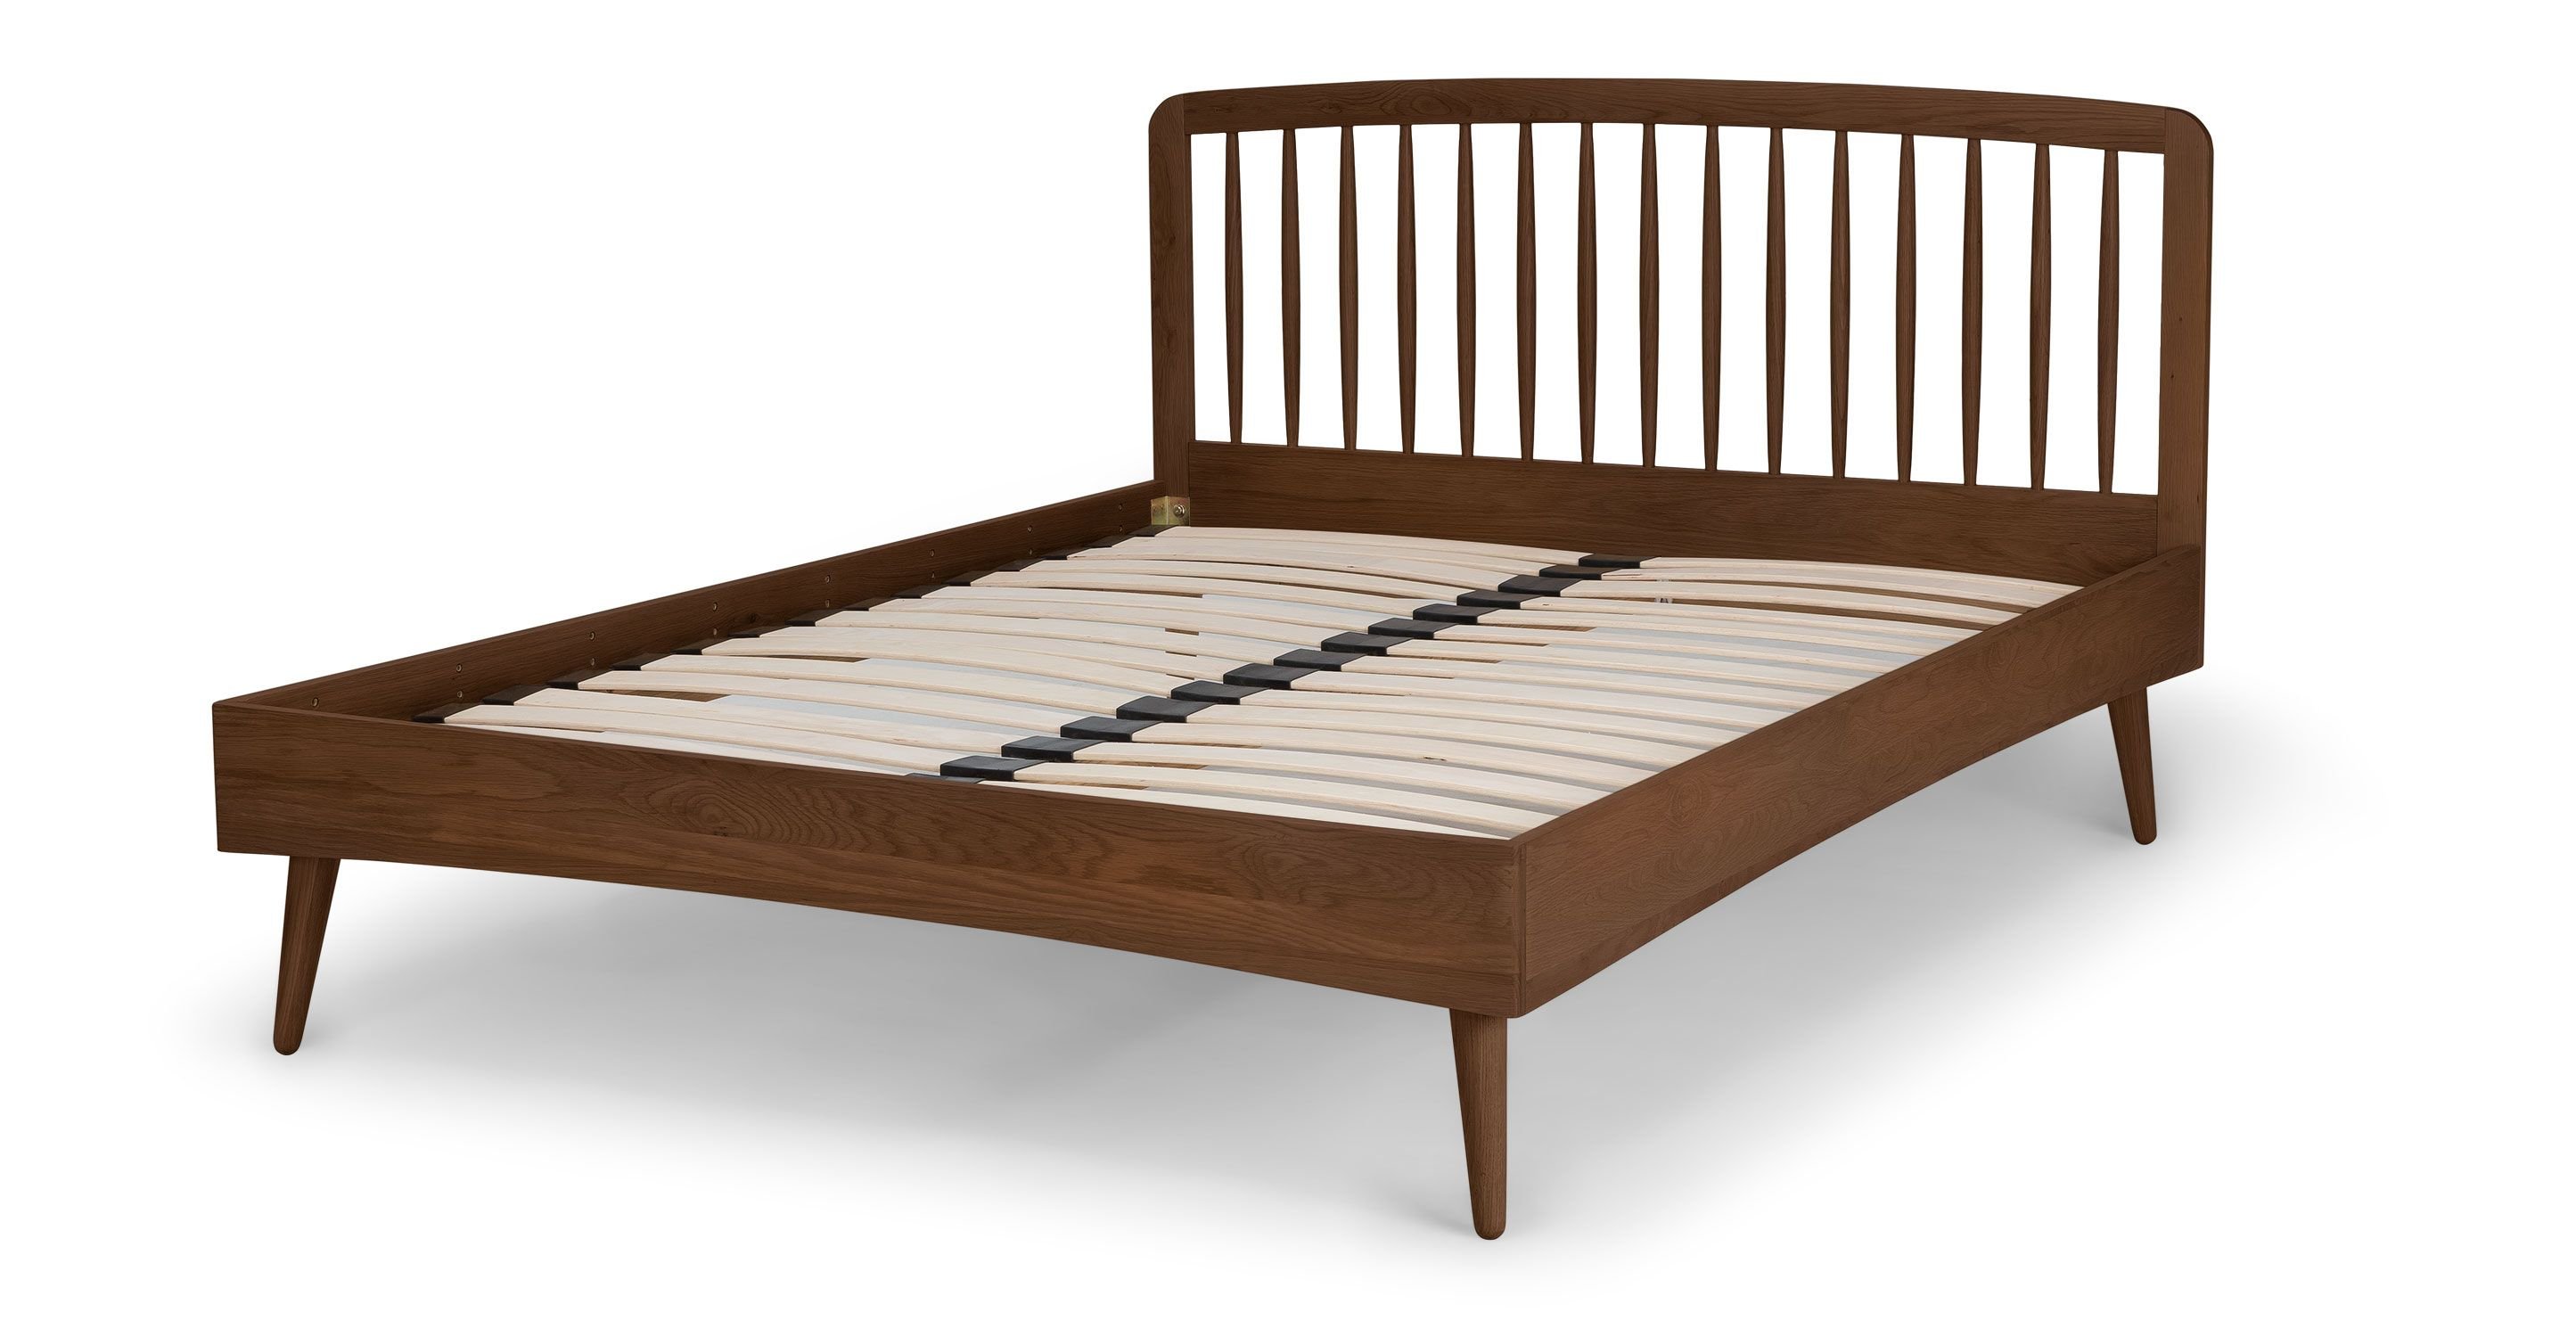 Culla Spindle Walnut Full Bed Beds Article Modern Mid Century And Scandinavian Furniture Modern Bed Frame Queen Size Bed Frames Full Bed Frame